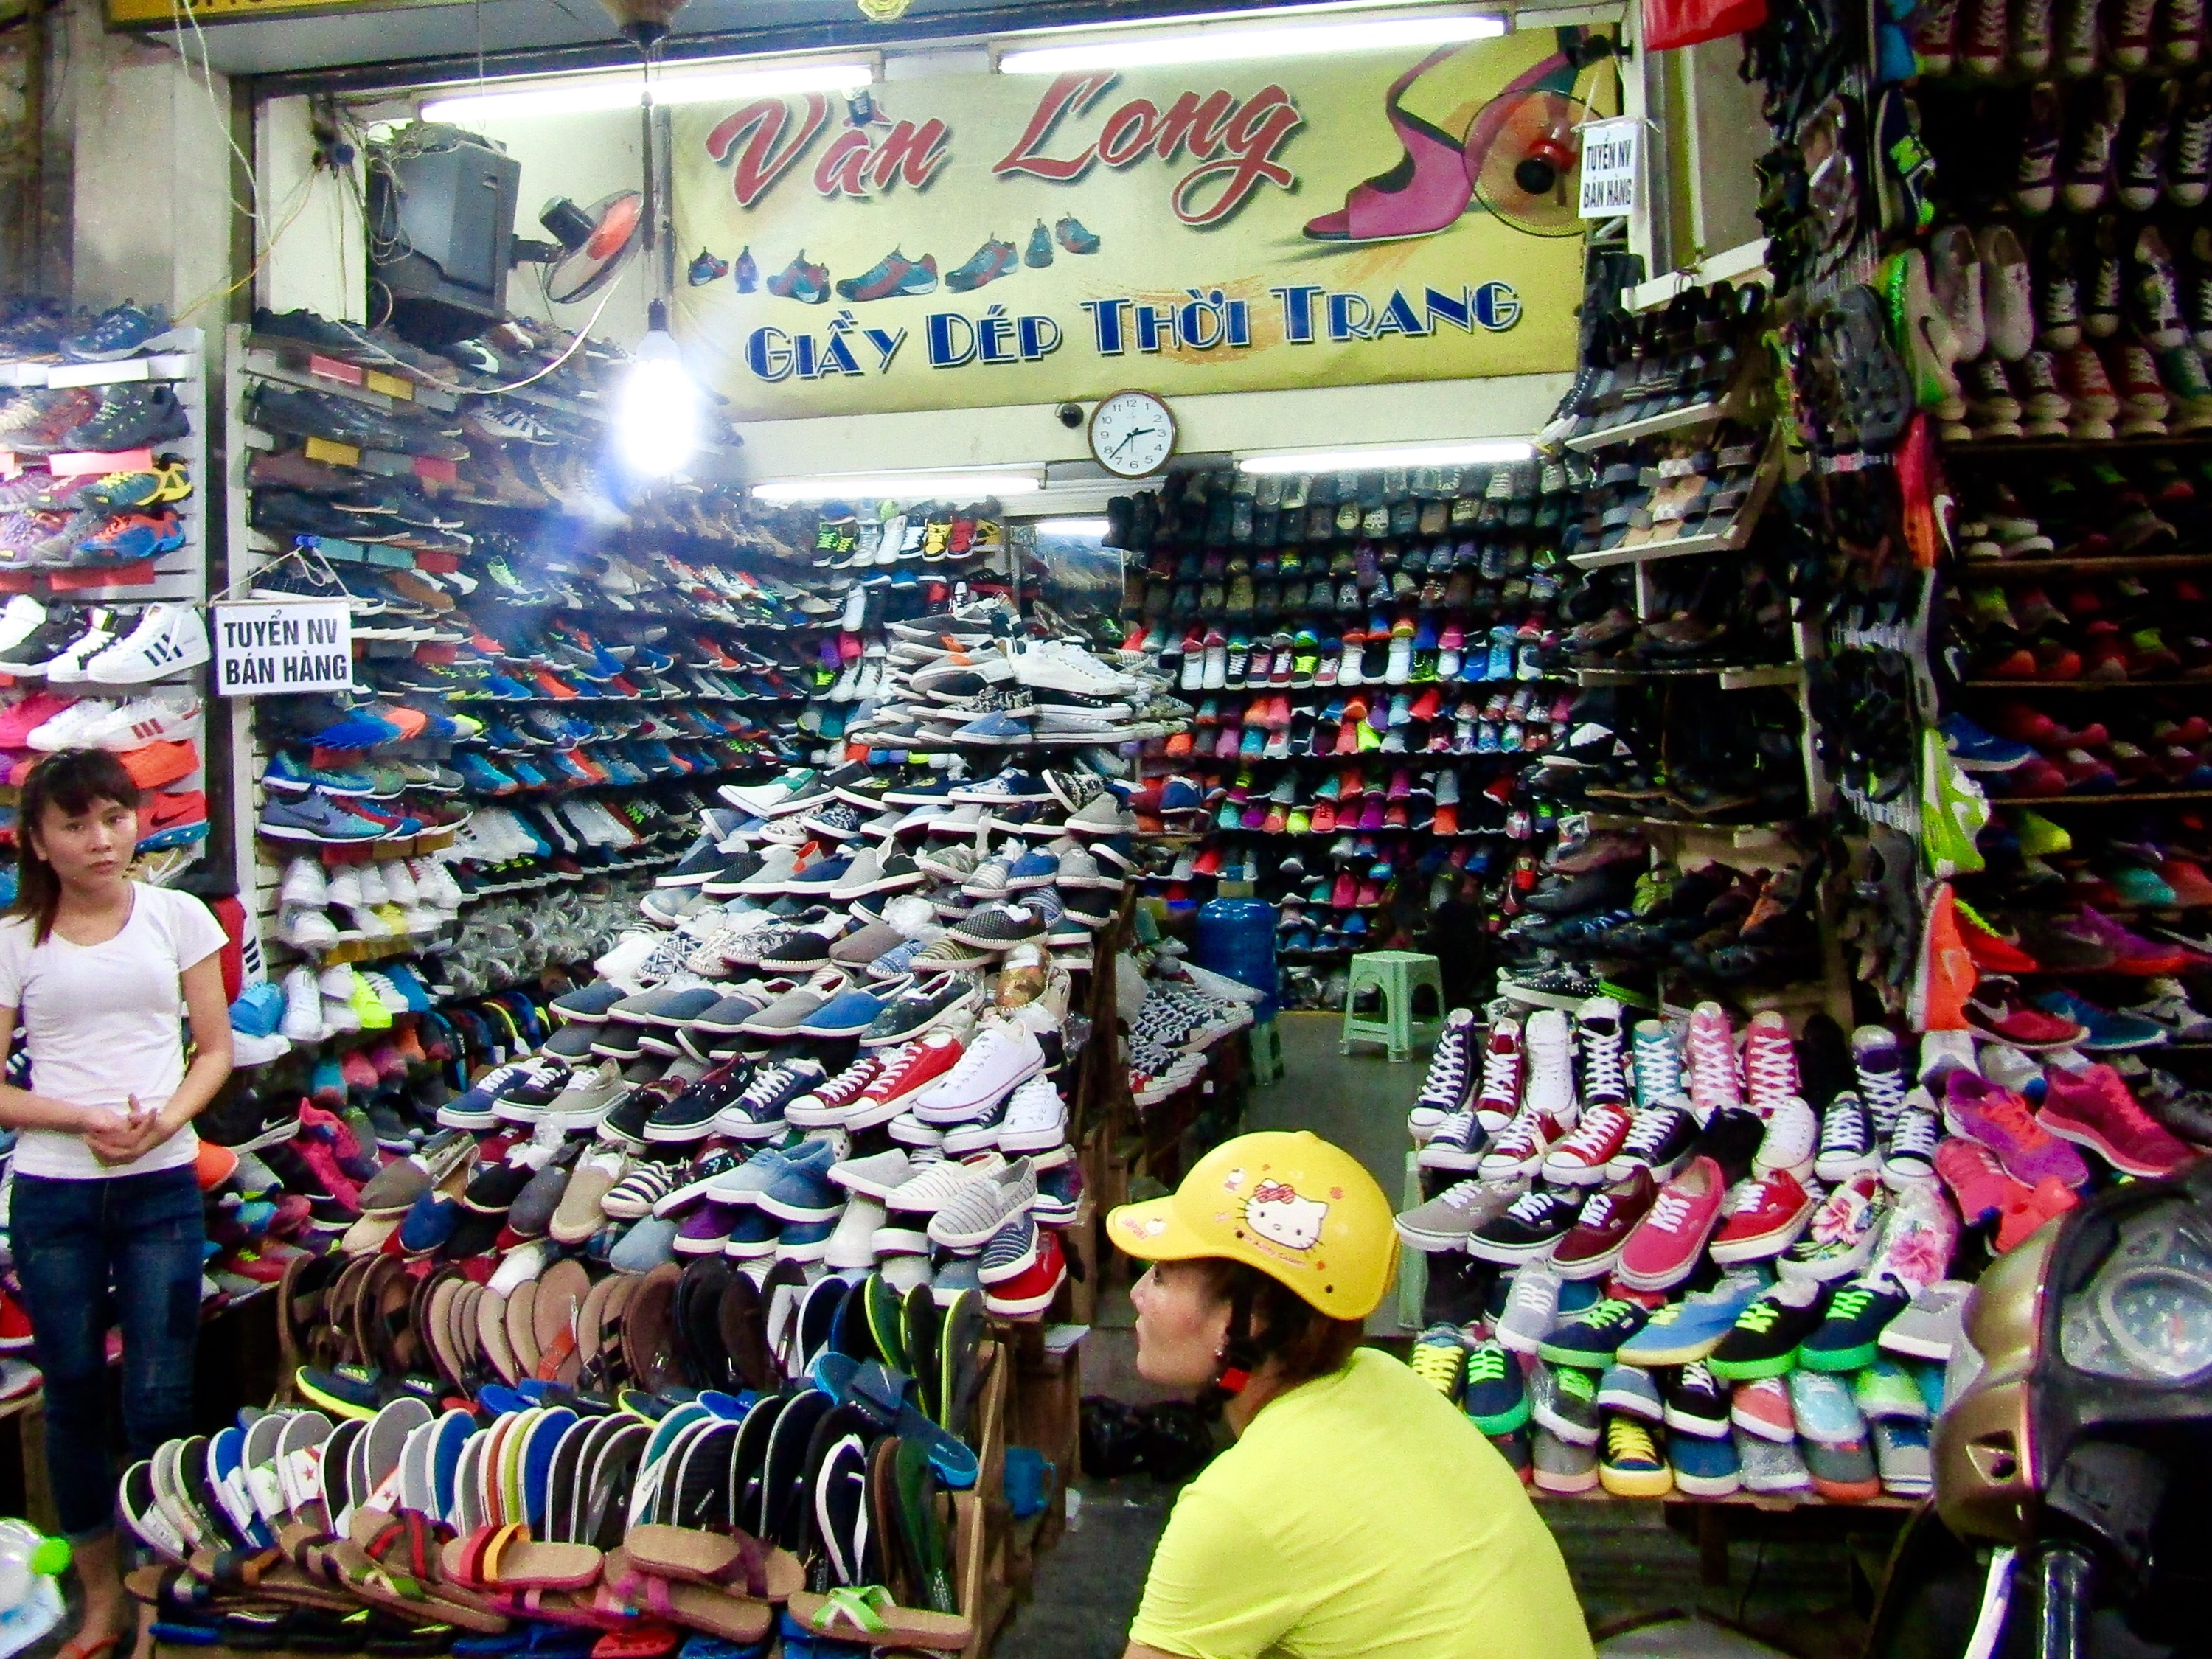 On Hang Dau (Shoe Street), brand name shoes made in Vietnamese or Cambodian factories spilled out onto the sidewalks. The authenticity may be dubious, but the prices are not. Unfortunately, larger Western-sizes for men are pretty hard to come by.